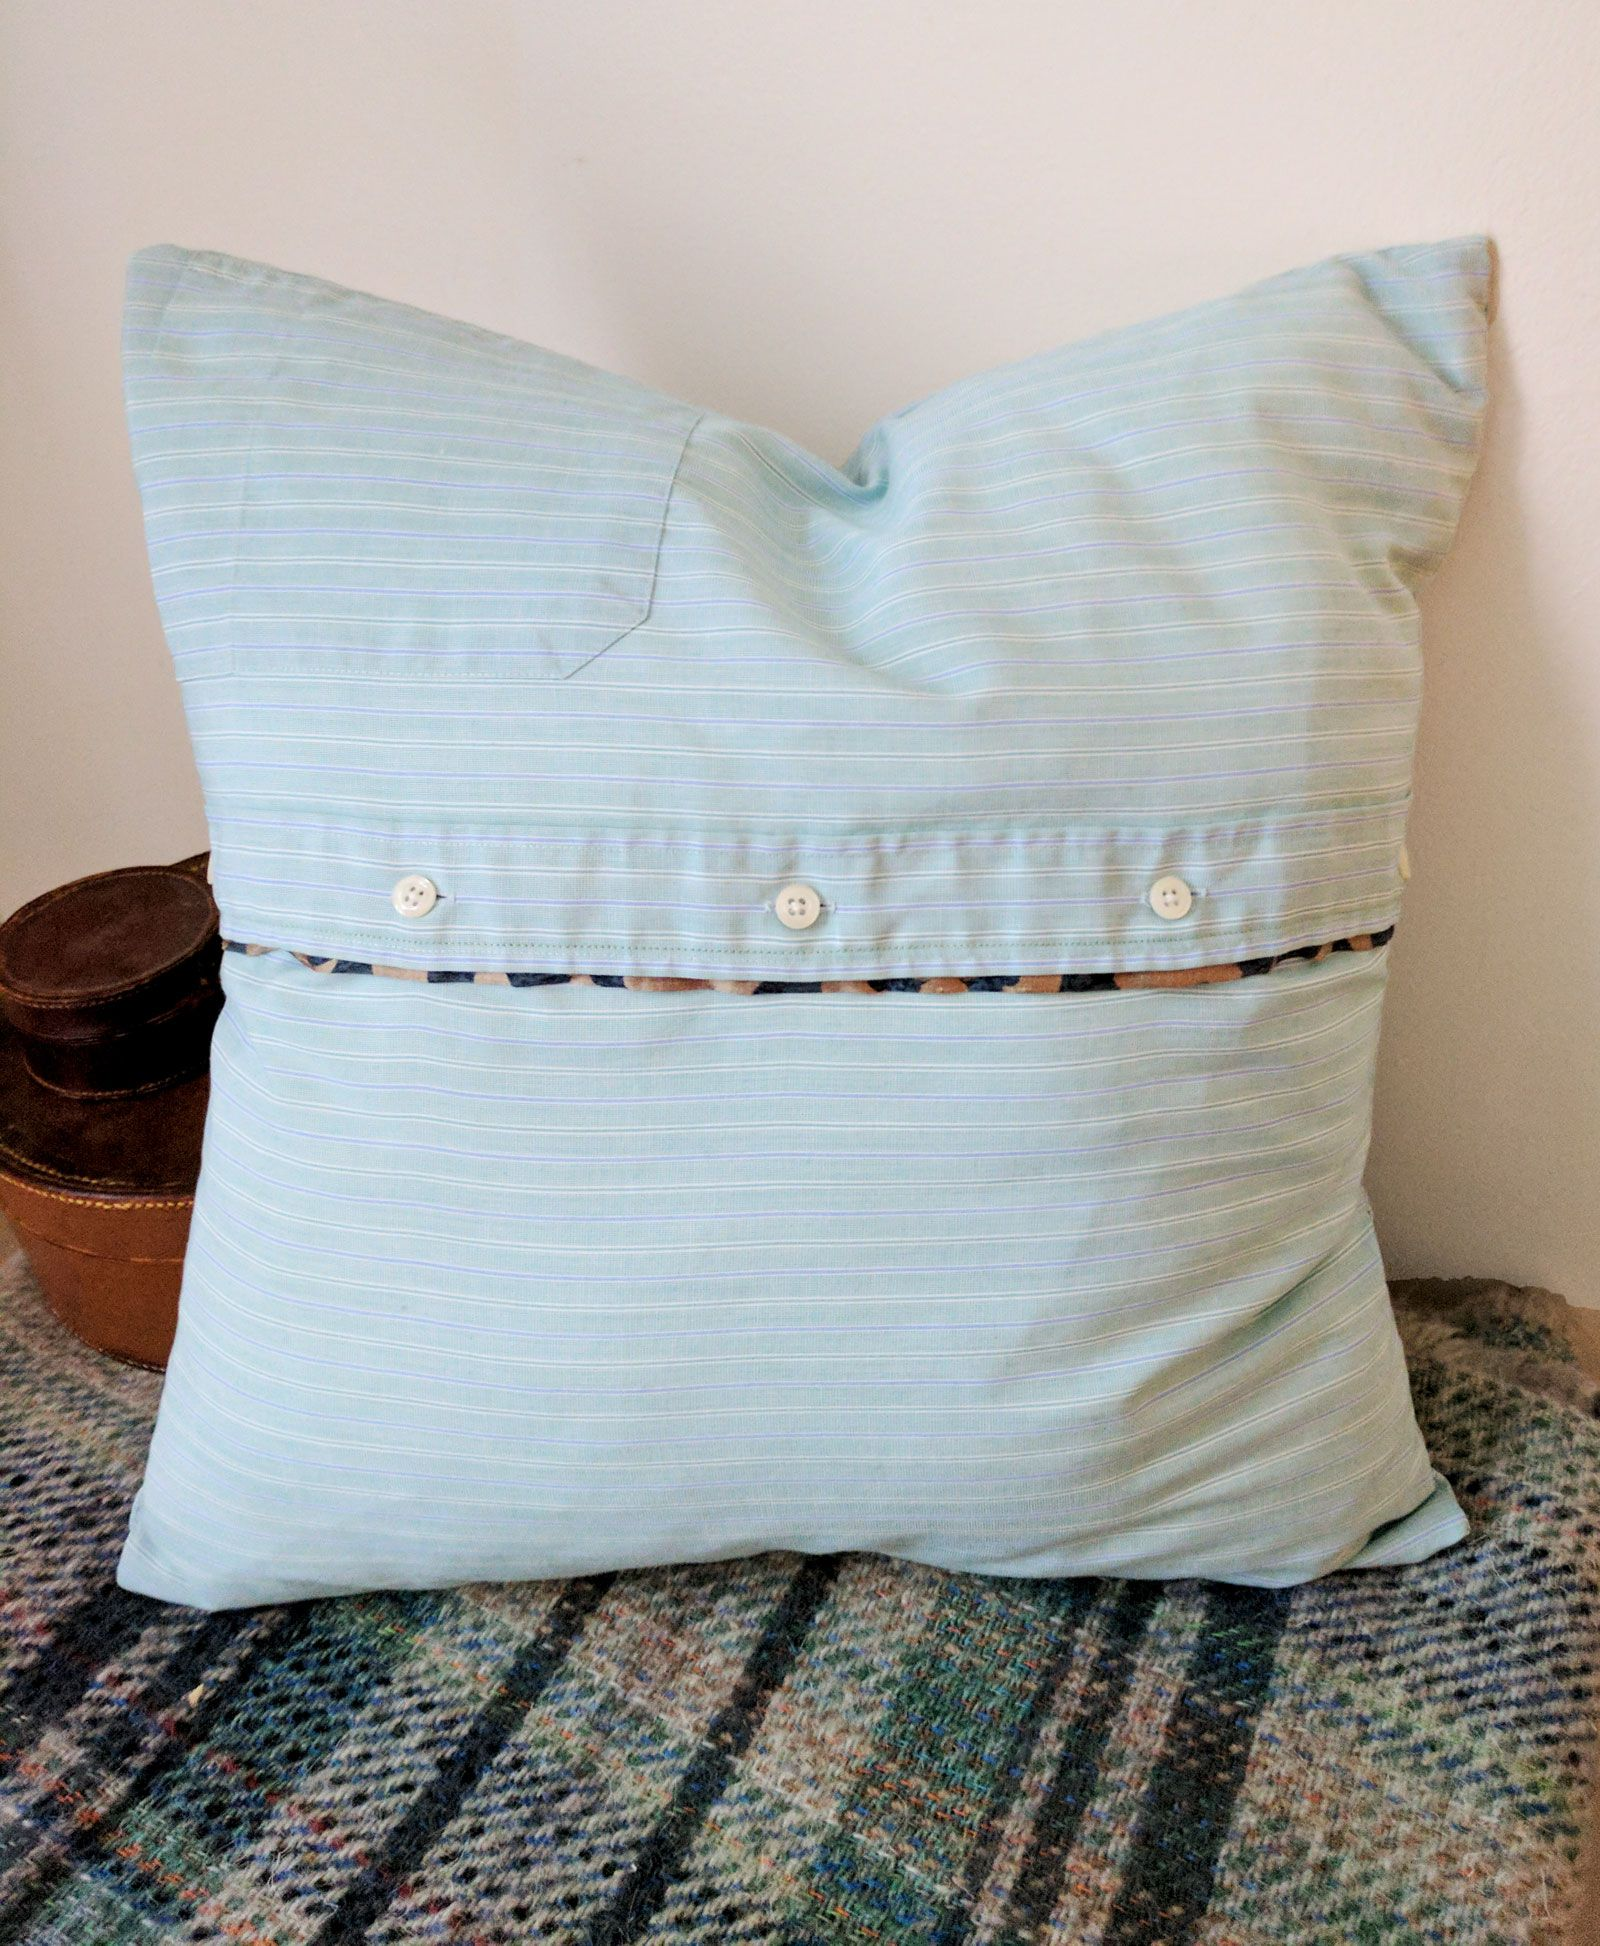 Green and blue striped cushion cover with navy silk tie trim